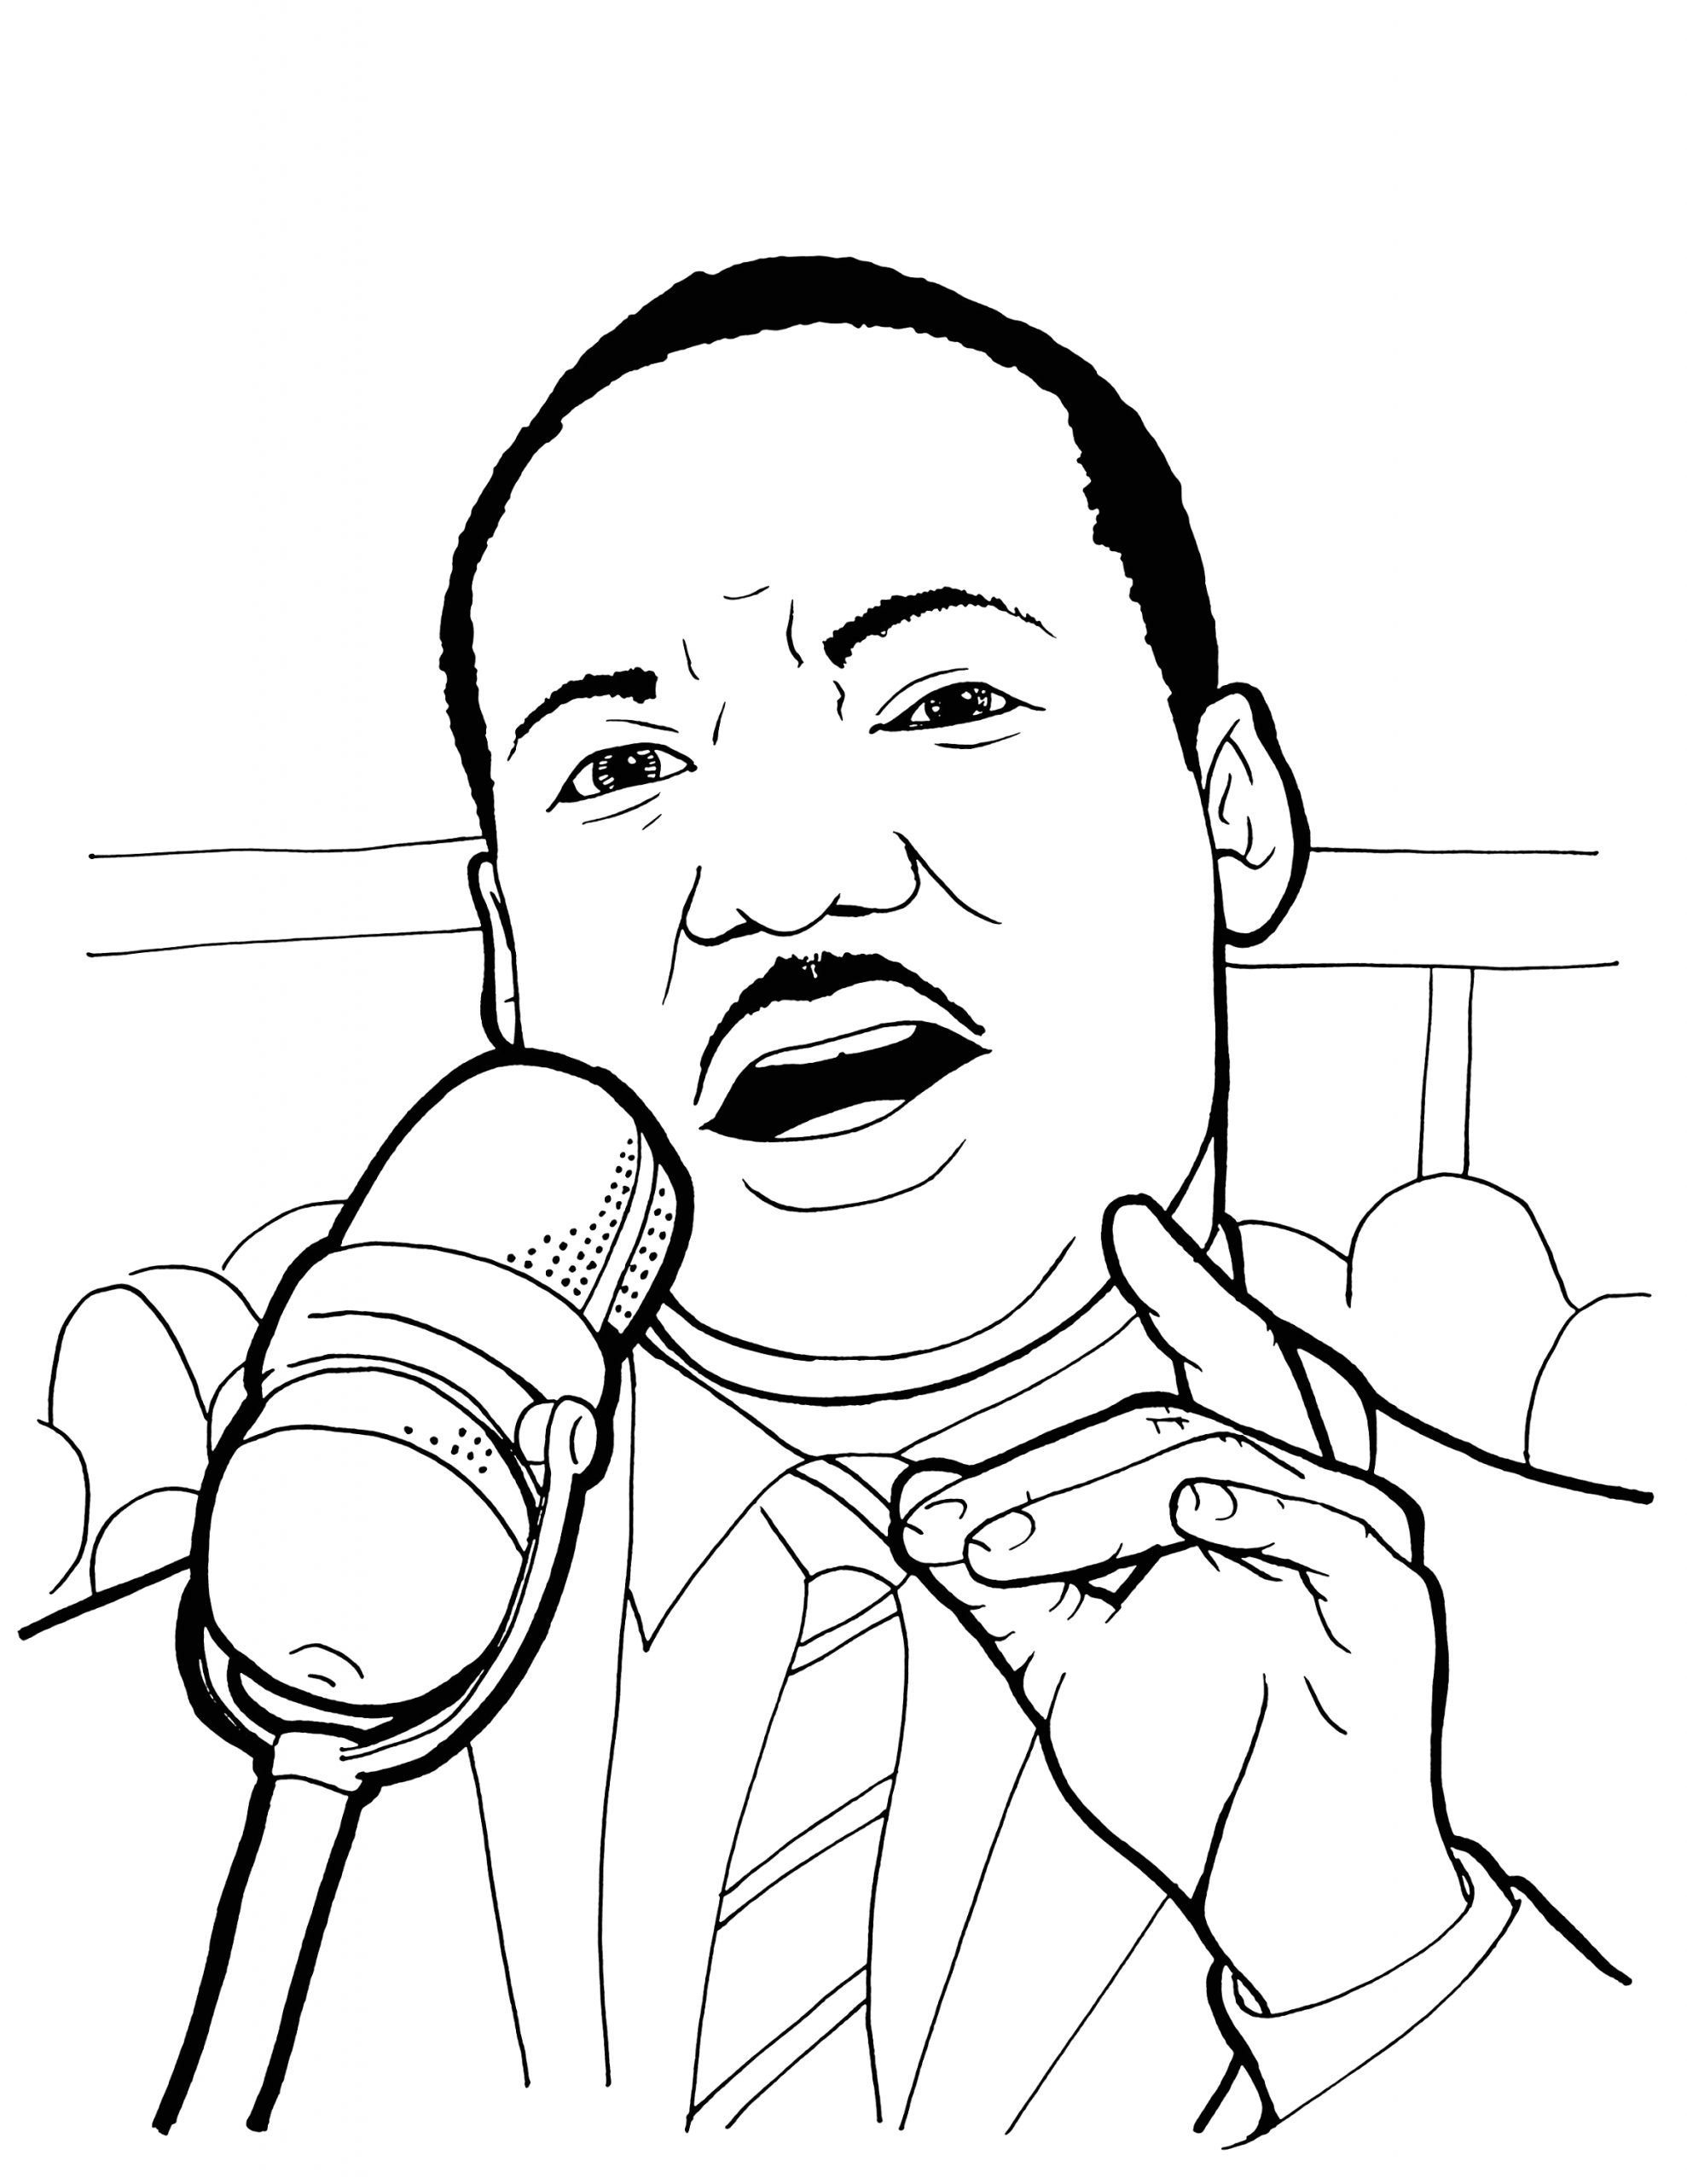 Martin Luther King Jr Coloring Pages Printable Free Martin Luther King Coloring Pages Printable at